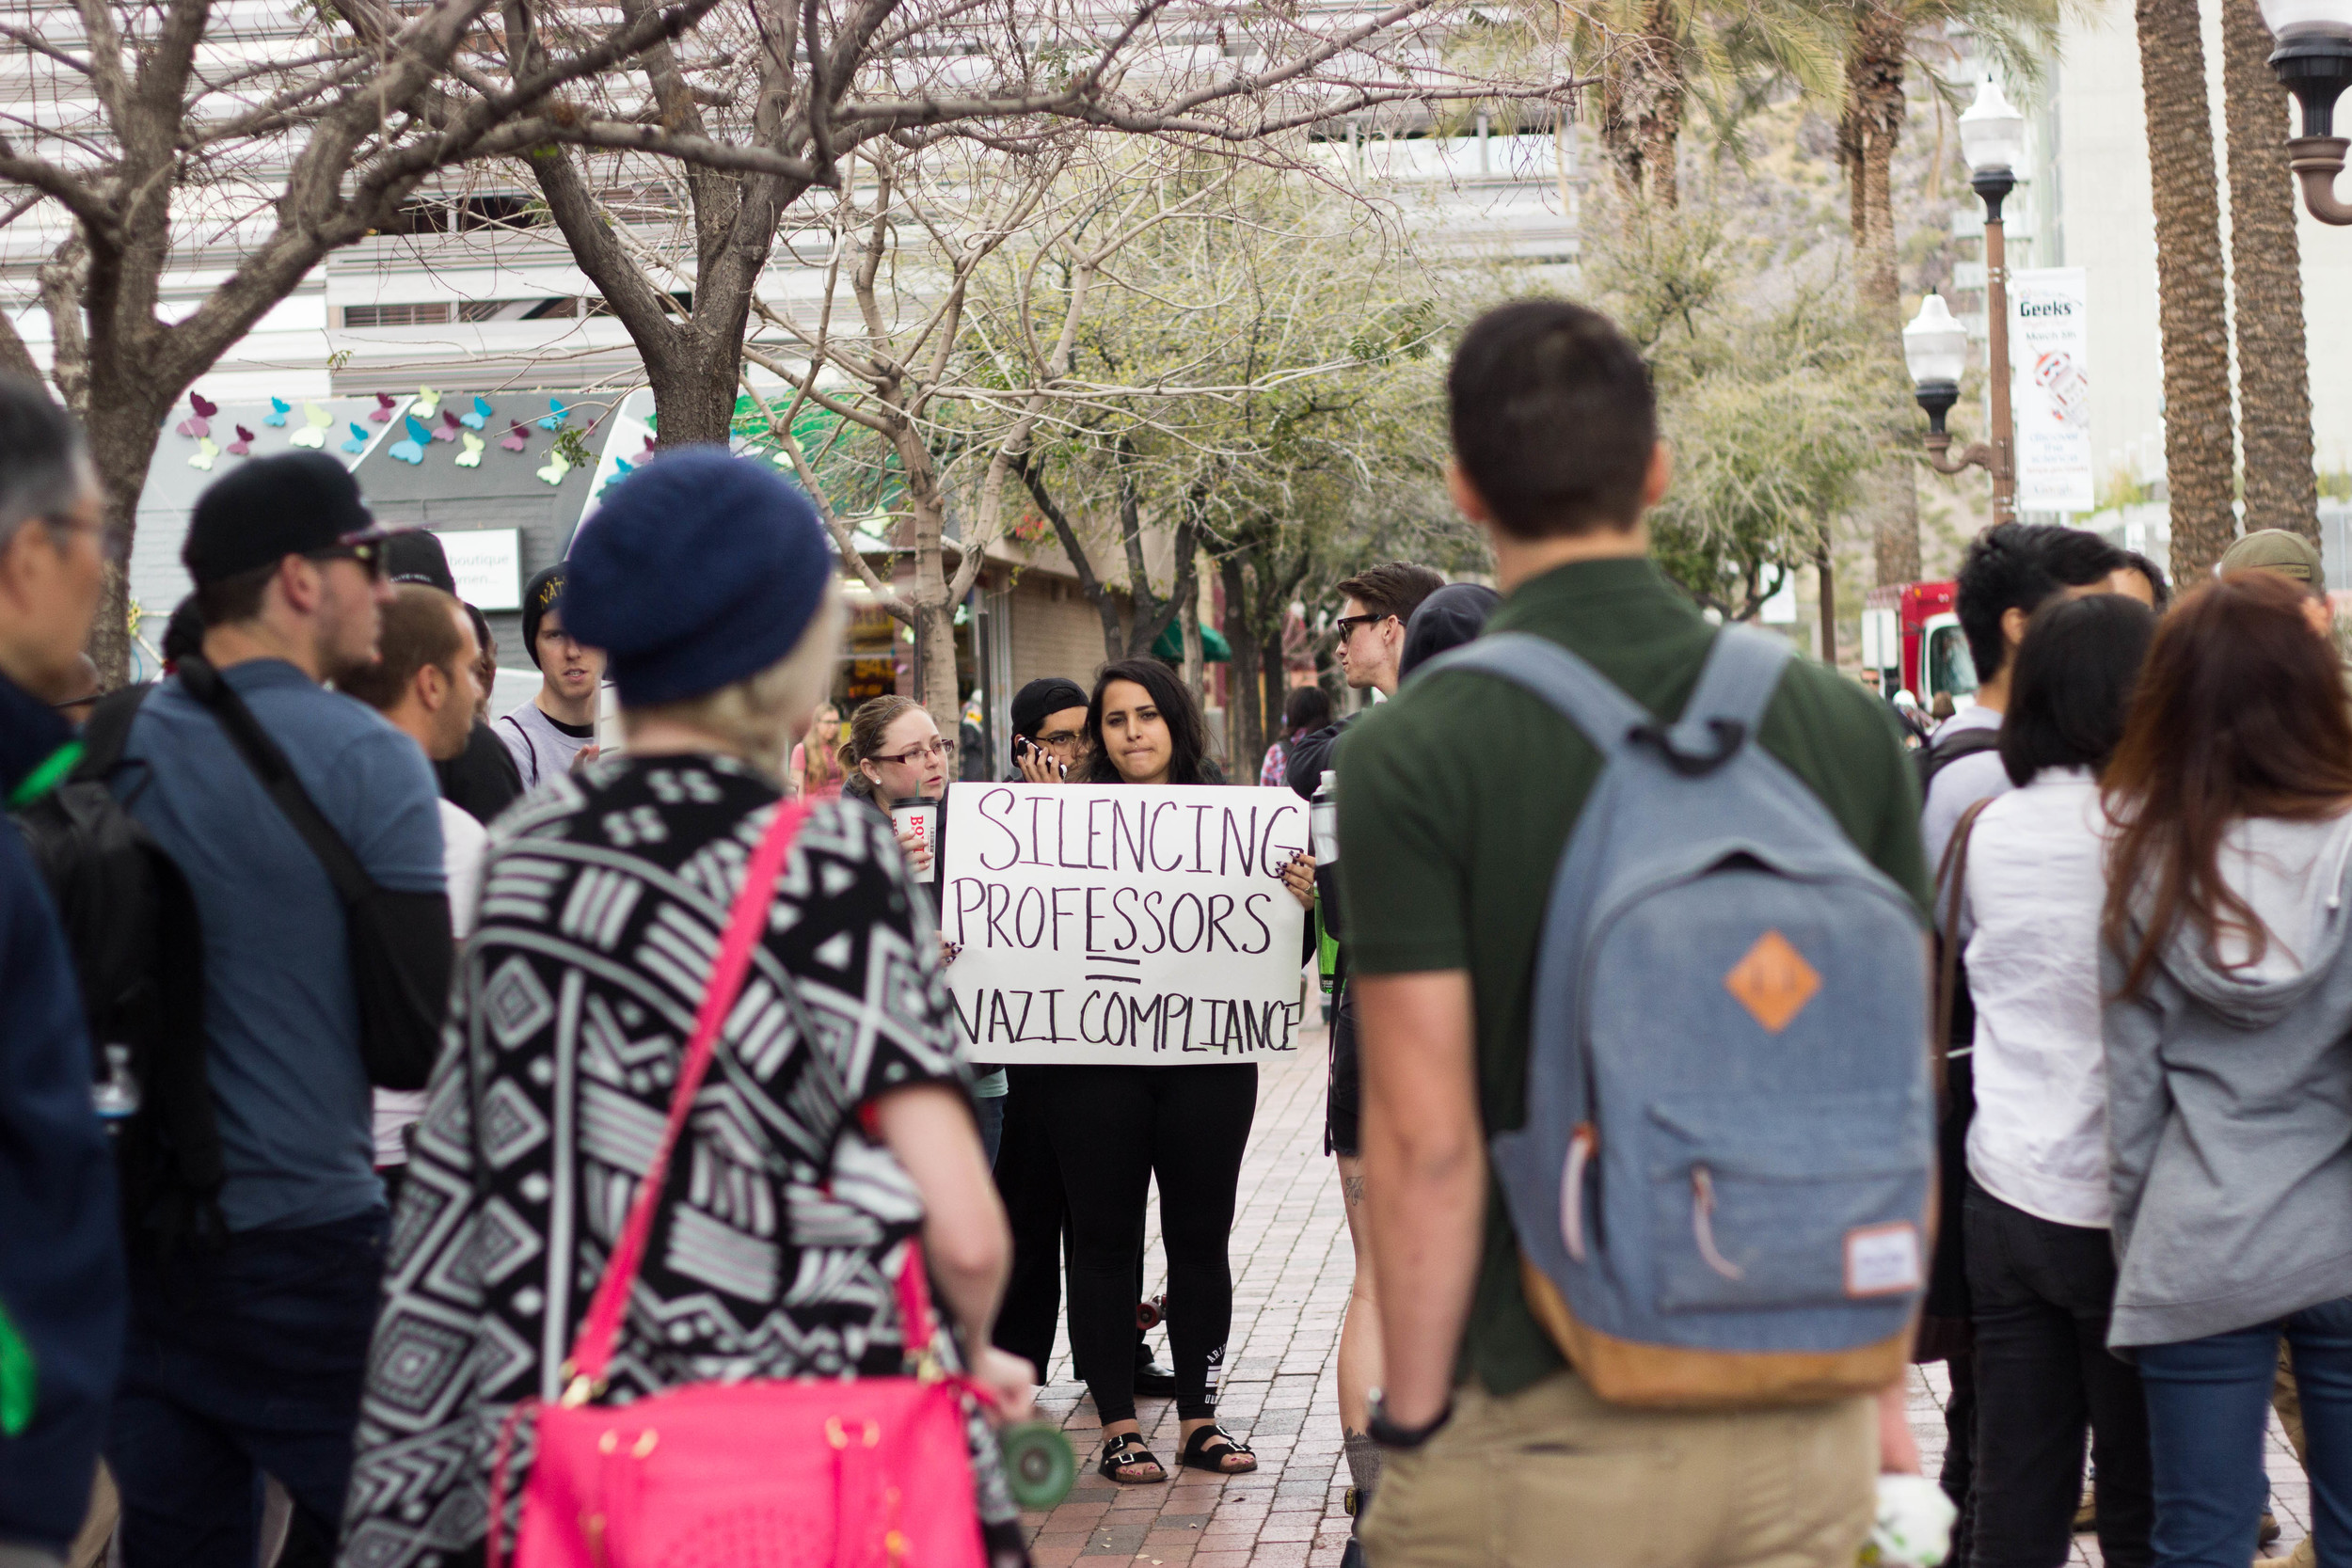 Junior ASU student Vanna Moreles of Tempe, Ariz. stands among a crowd in protest against National Youth Front and ASU's lack of action against the white nationalist group Tuesday afternoon. (Photo by Gretchen Burnton)